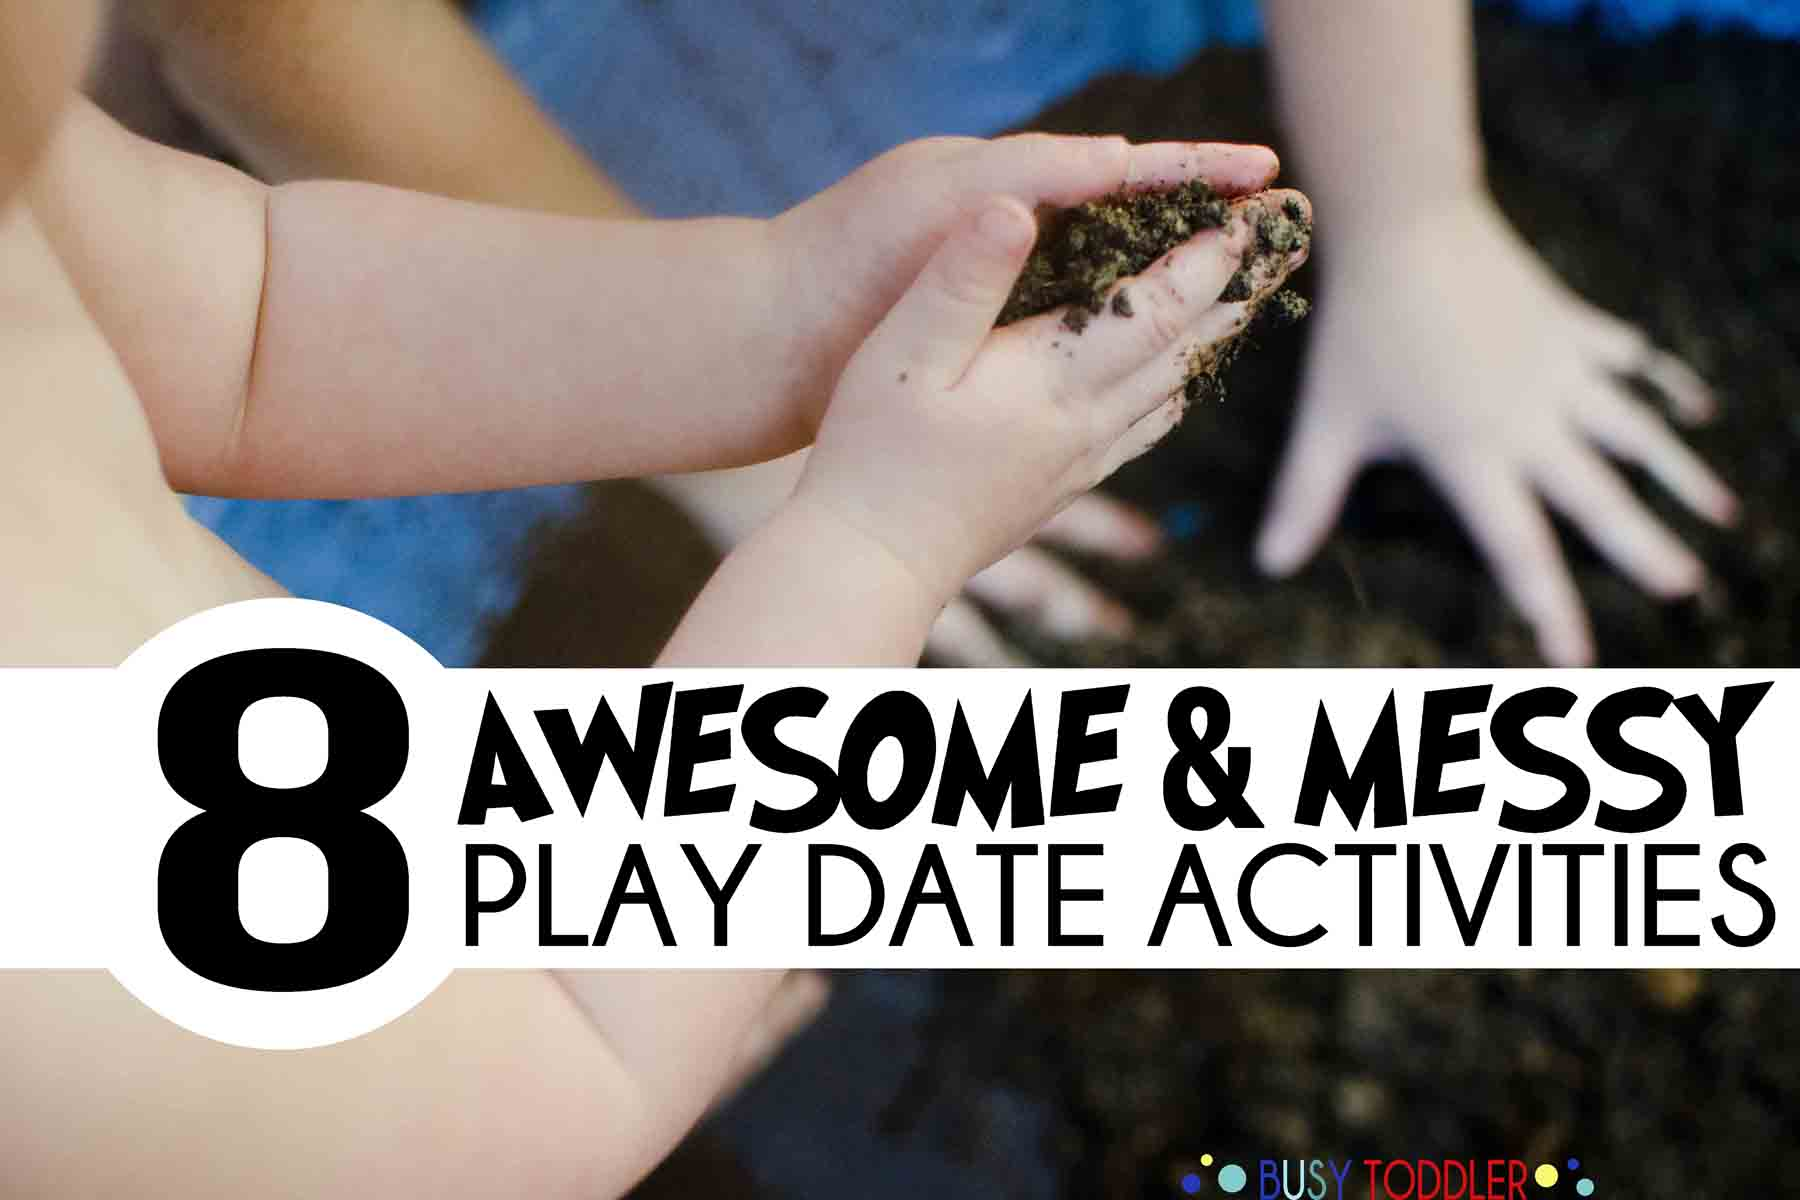 MESSY PLAY DATE: 8 awesome and messy play date activities for toddlers.